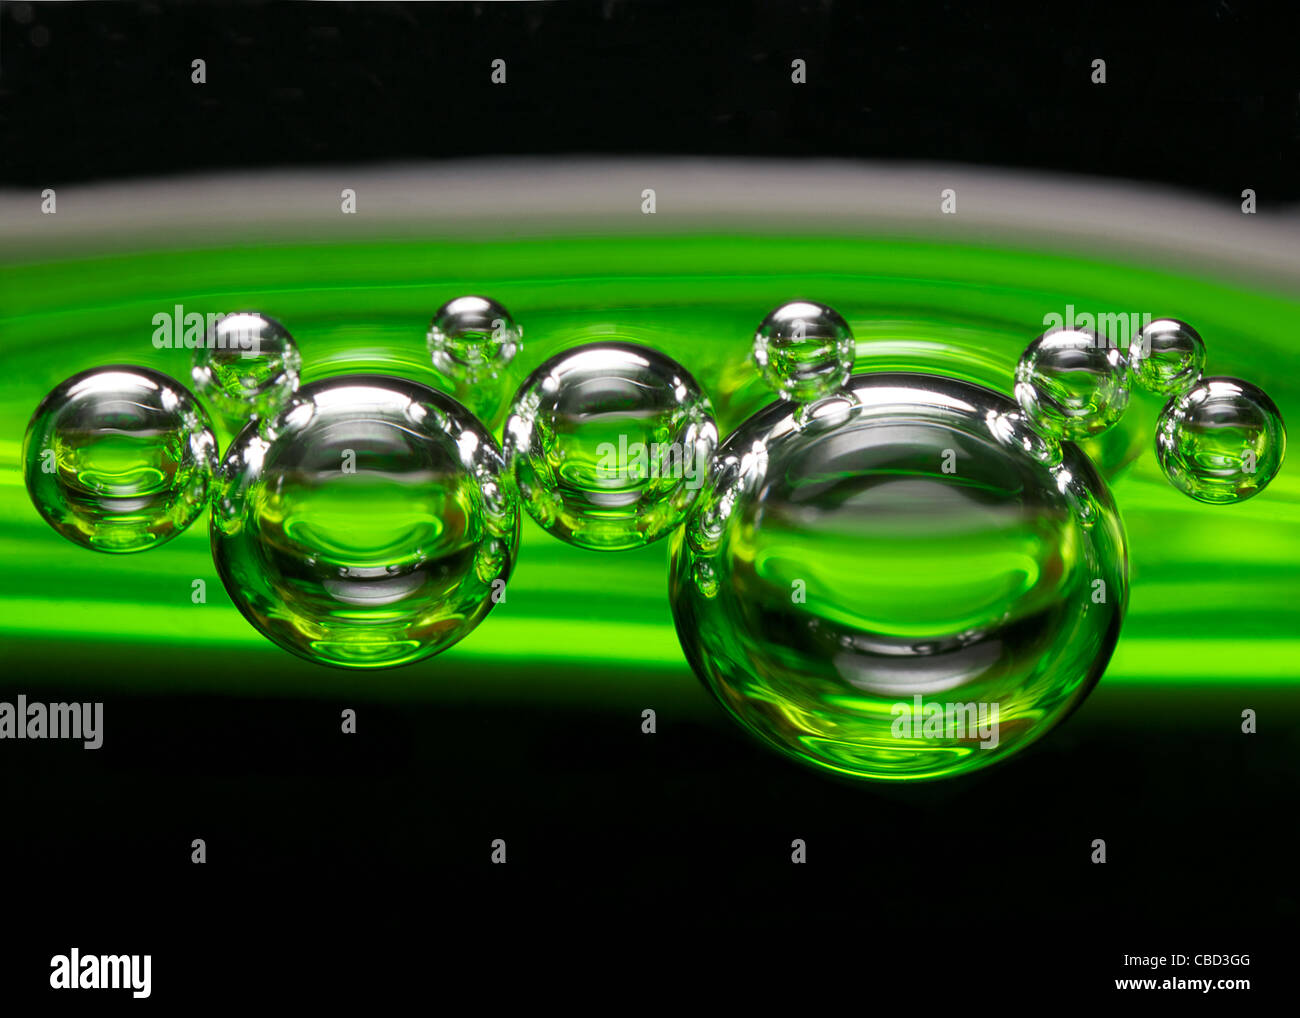 green fizz up close - Stock Image